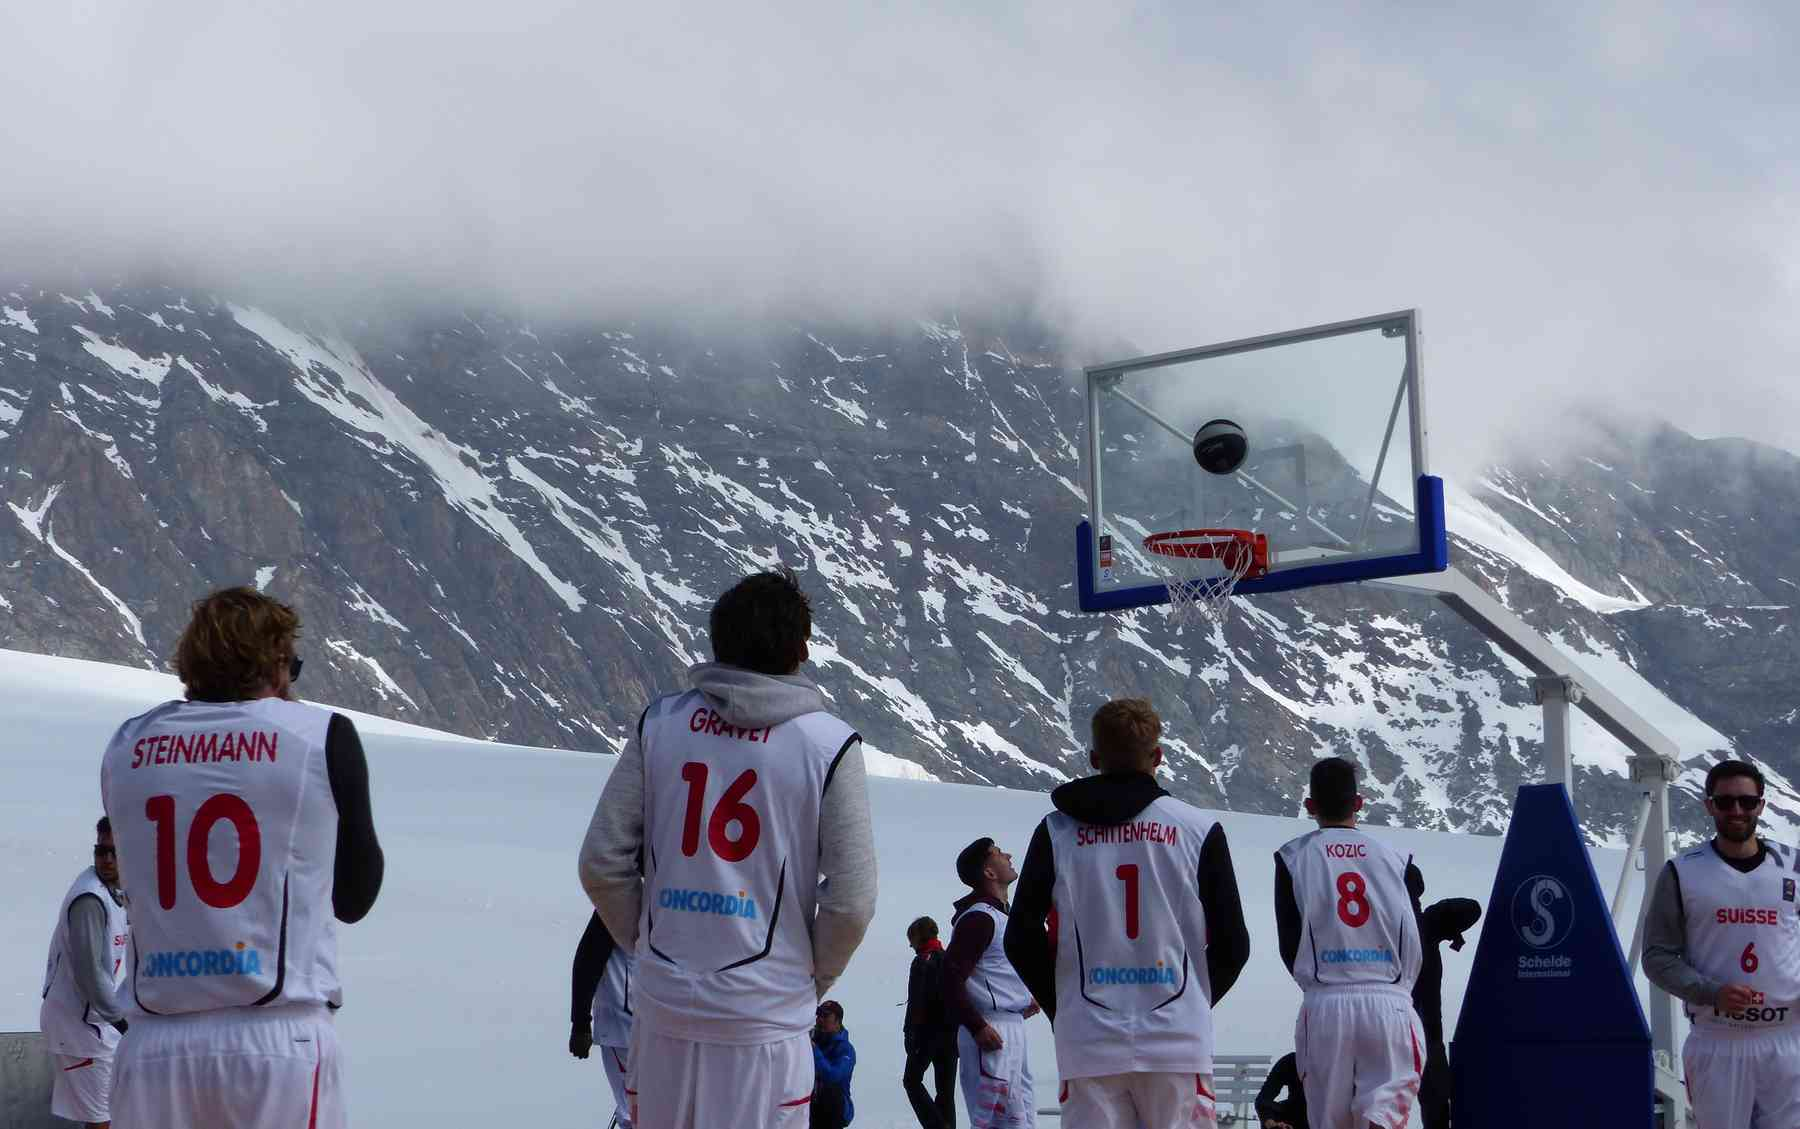 Tony Parker plays basketball at Jungfraujoch